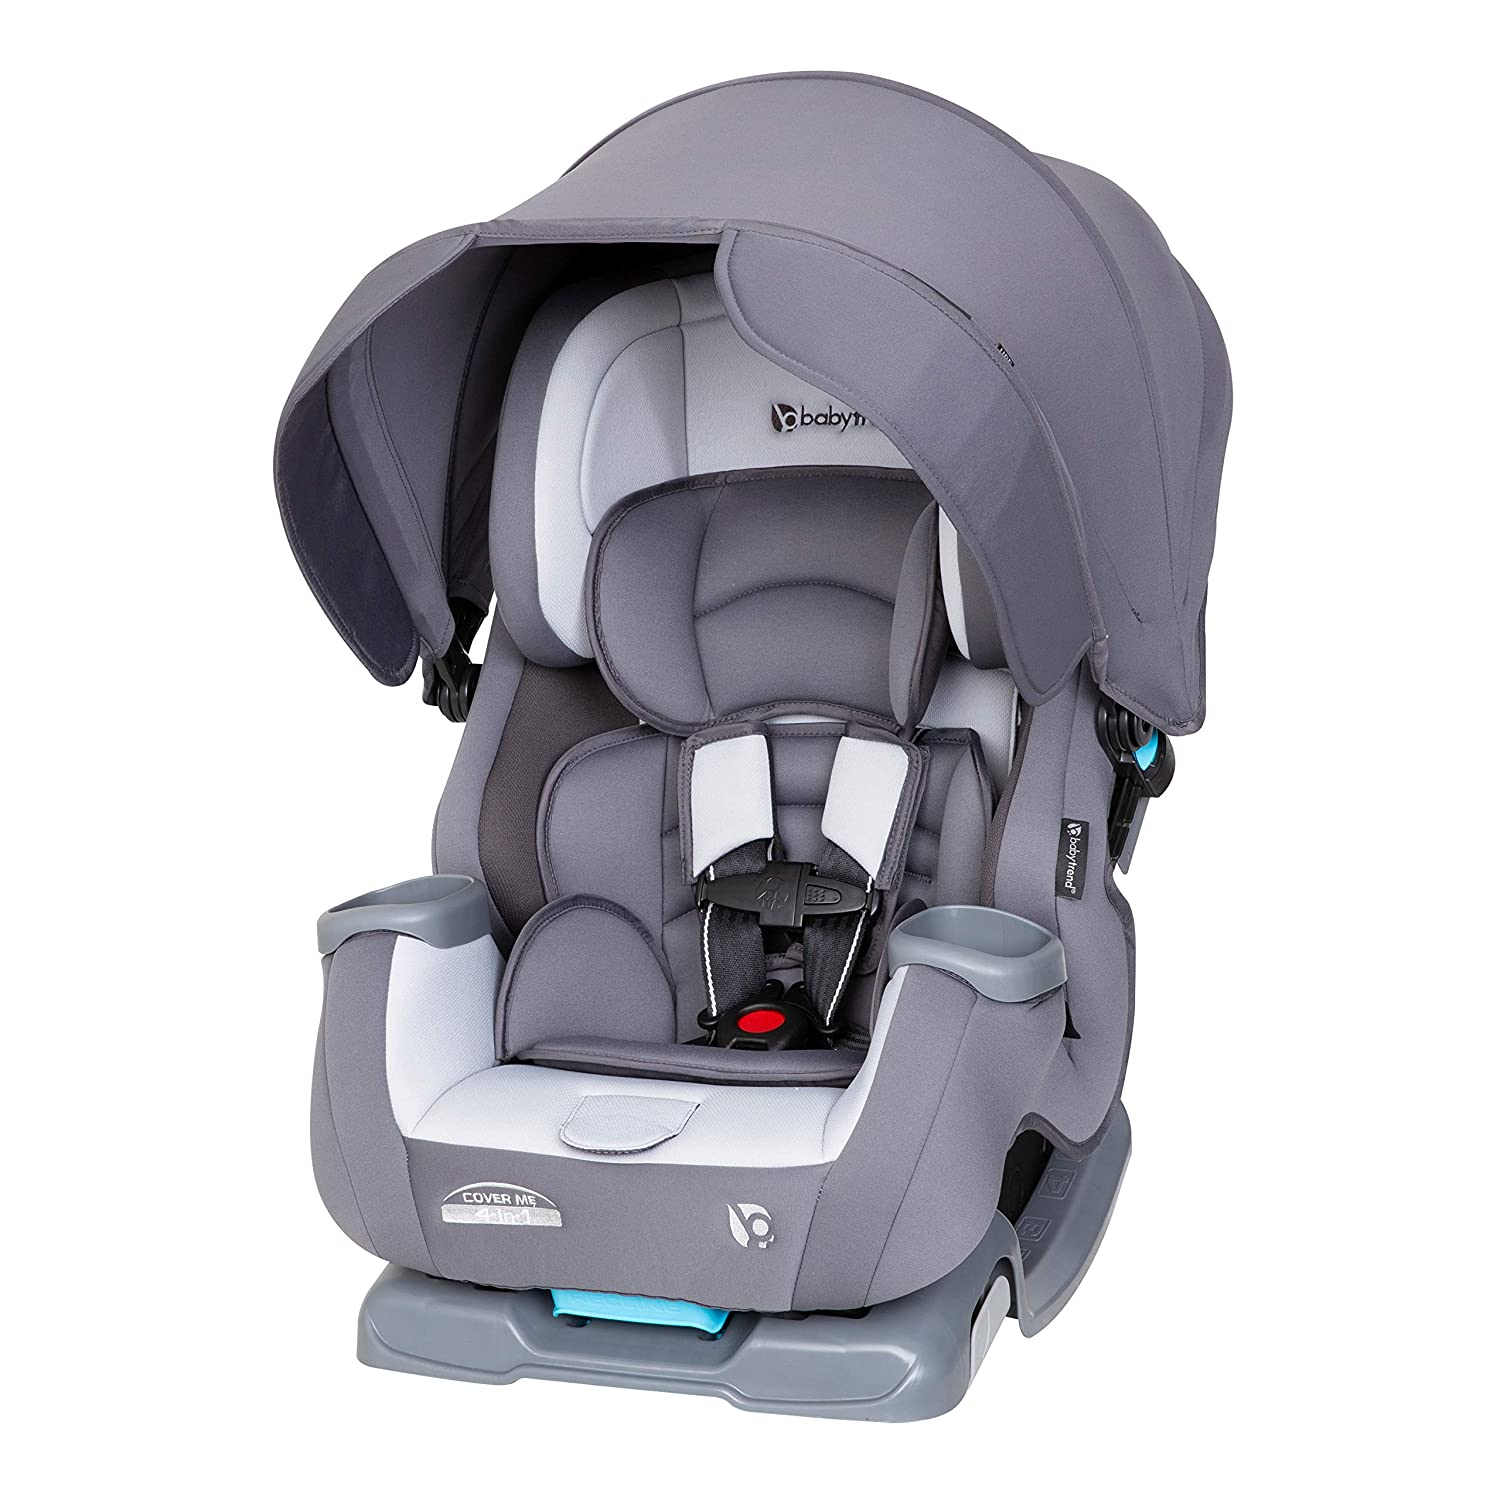 Baby Trend Cover Me 4 in Car Vespa 1 Convertible Seat Quantity limited Super-cheap